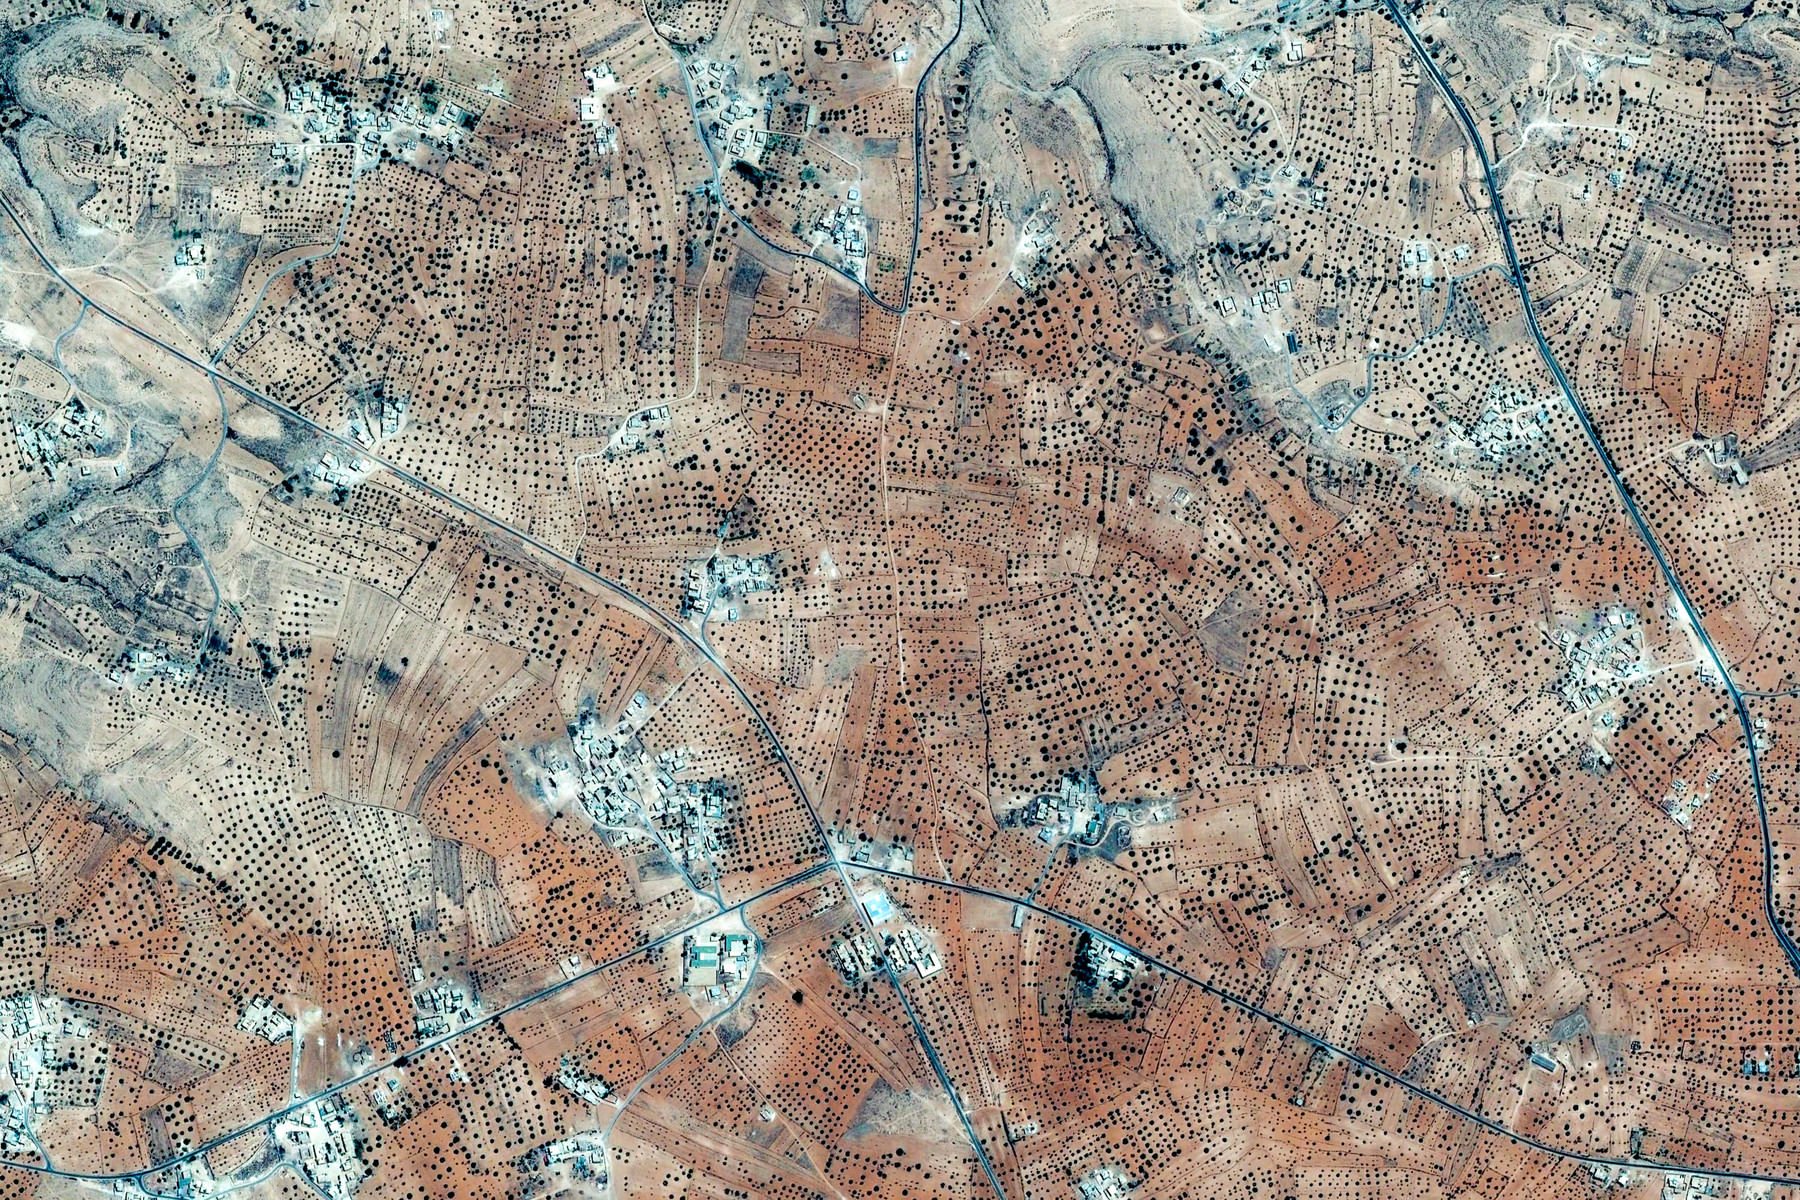 google-earth-Libya-Garyan-1178